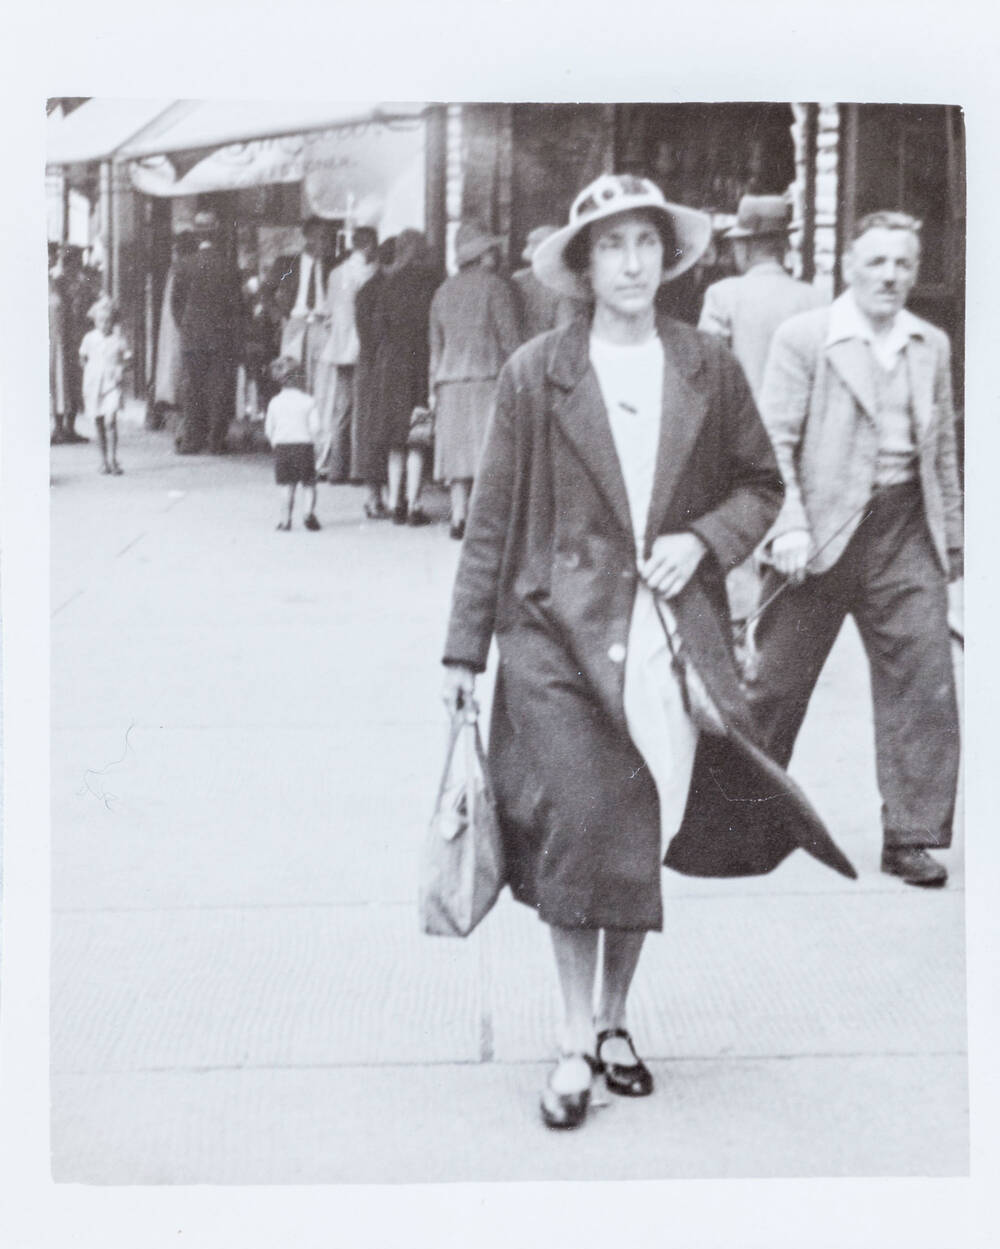 A black and white photo of a woman walking along a street wearing a hat and coat and carrying a handbag in her right hand.